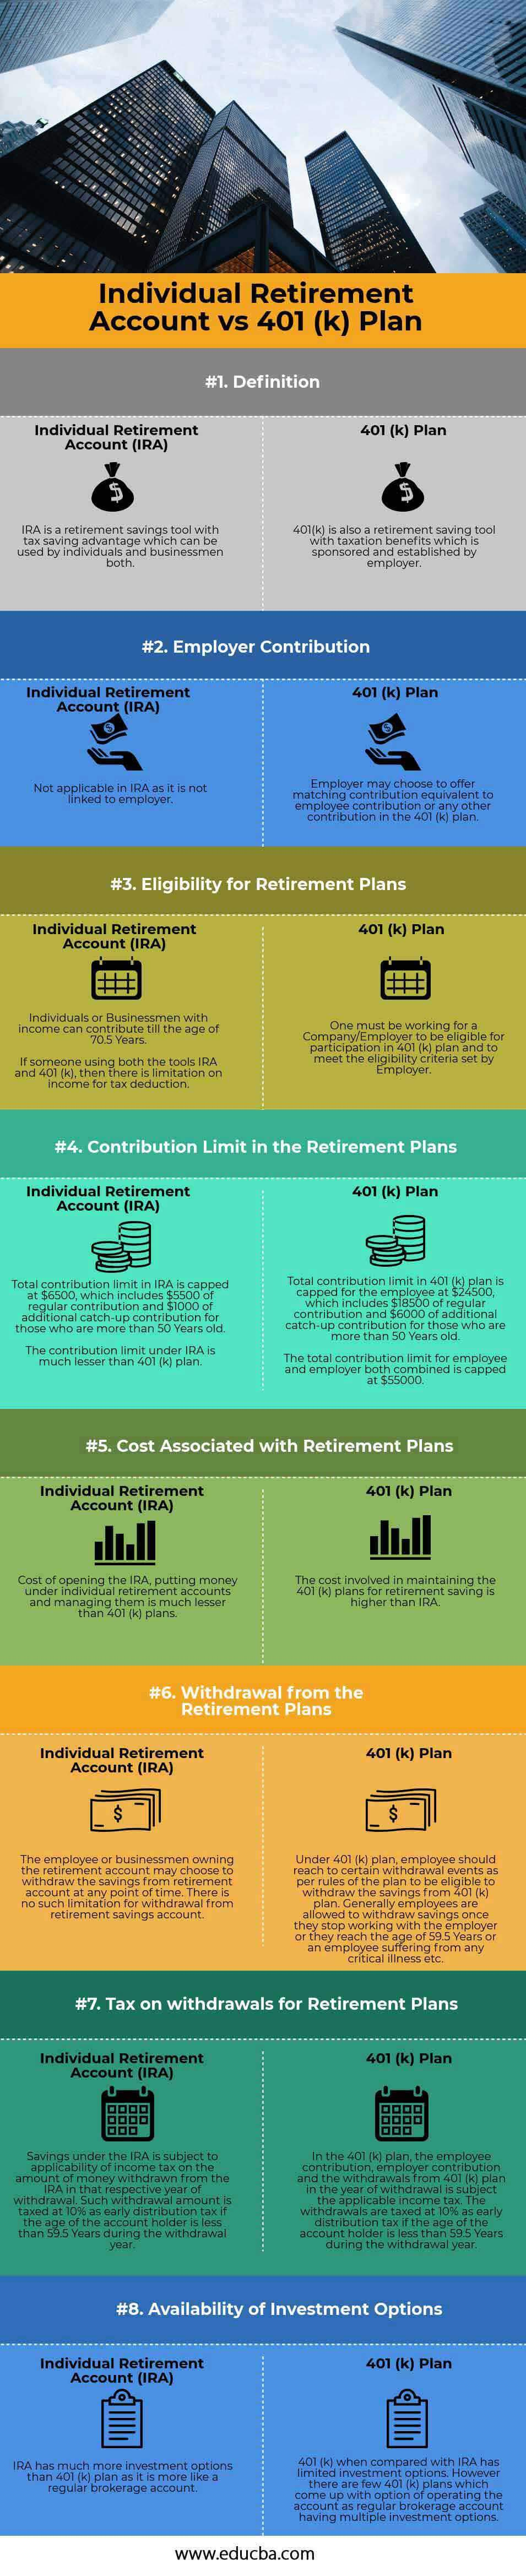 Individual-Retirement-Account-vs-401-(k)-Plan-info